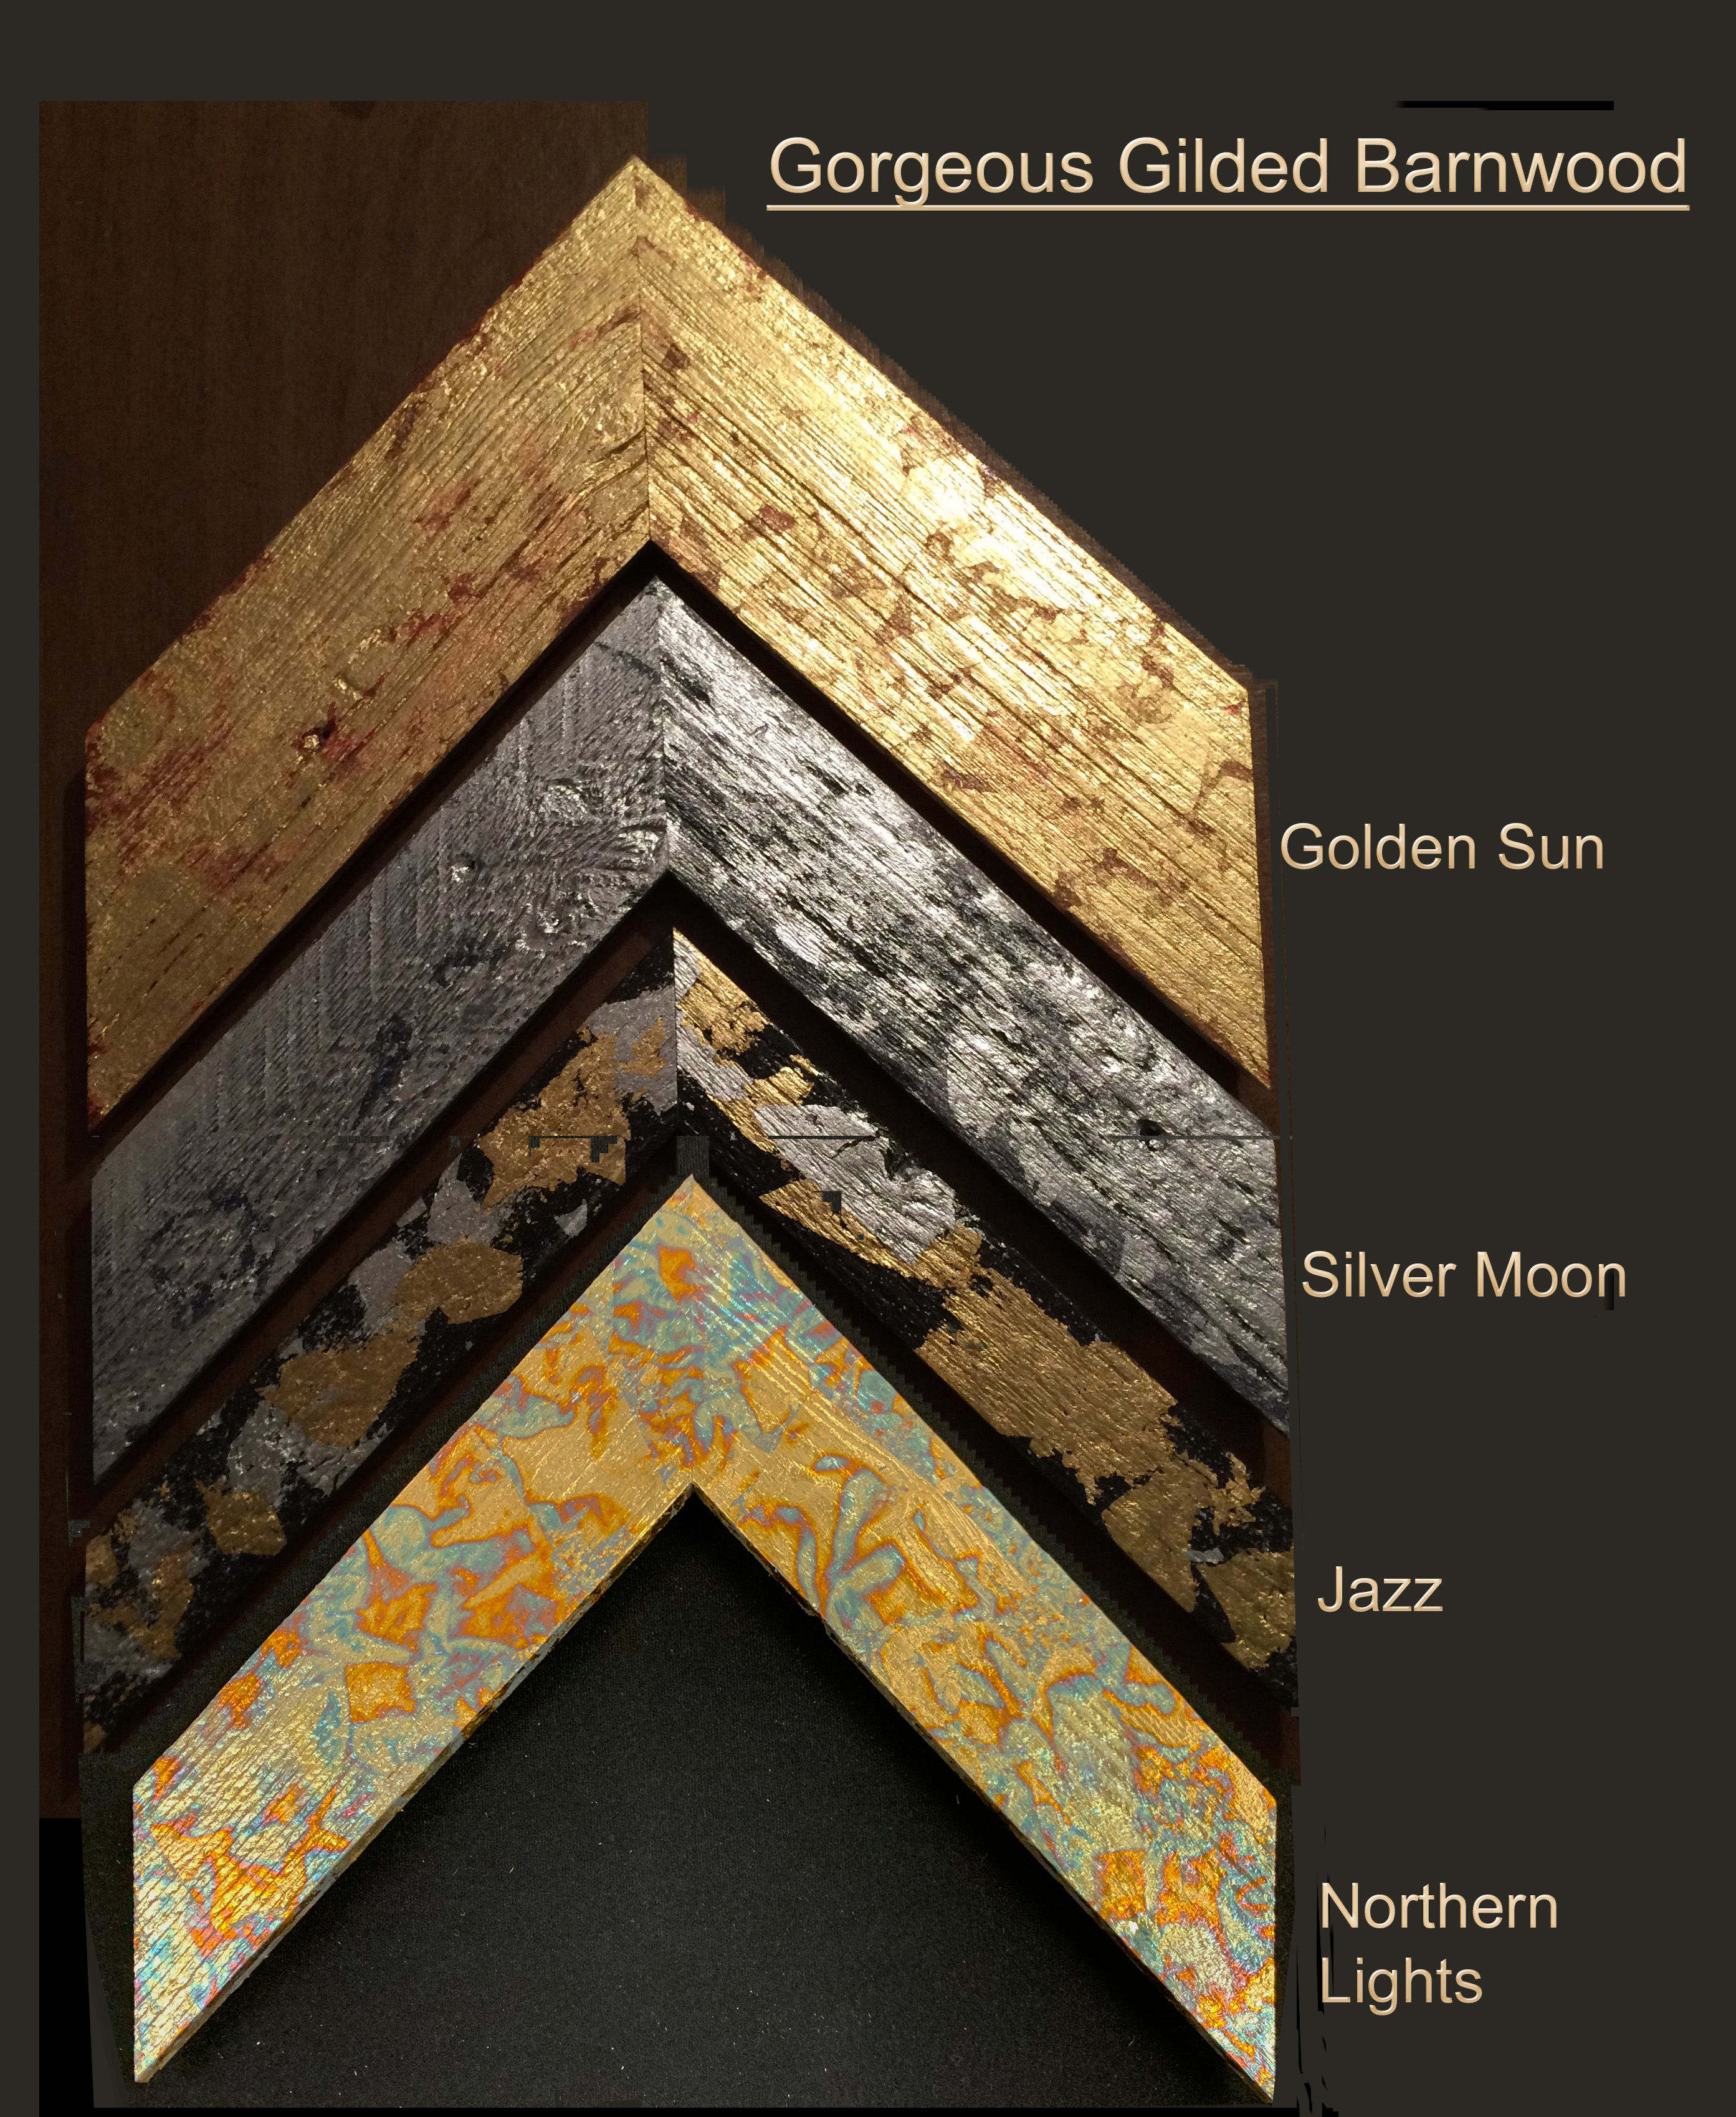 Barnwood painted and gilded with gold, silver, or verdigris metal leaf